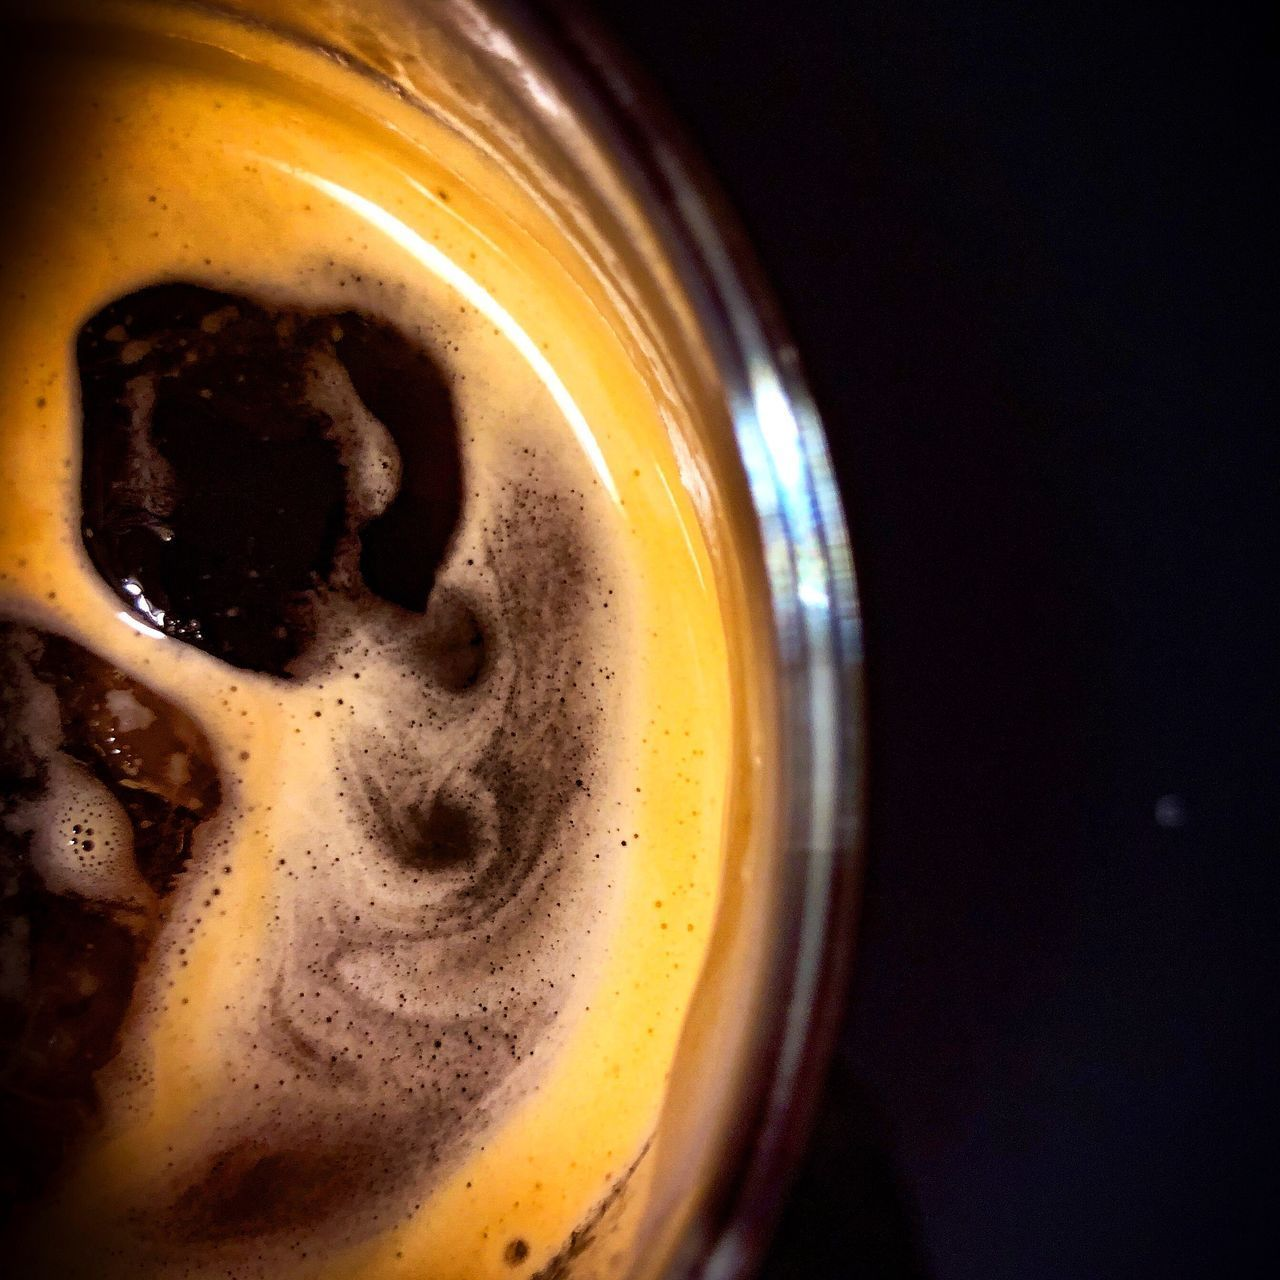 refreshment, drink, food and drink, close-up, indoors, still life, frothy drink, no people, coffee - drink, coffee cup, coffee, beer, mug, cup, glass, beer - alcohol, freshness, alcohol, drinking glass, focus on foreground, black background, froth